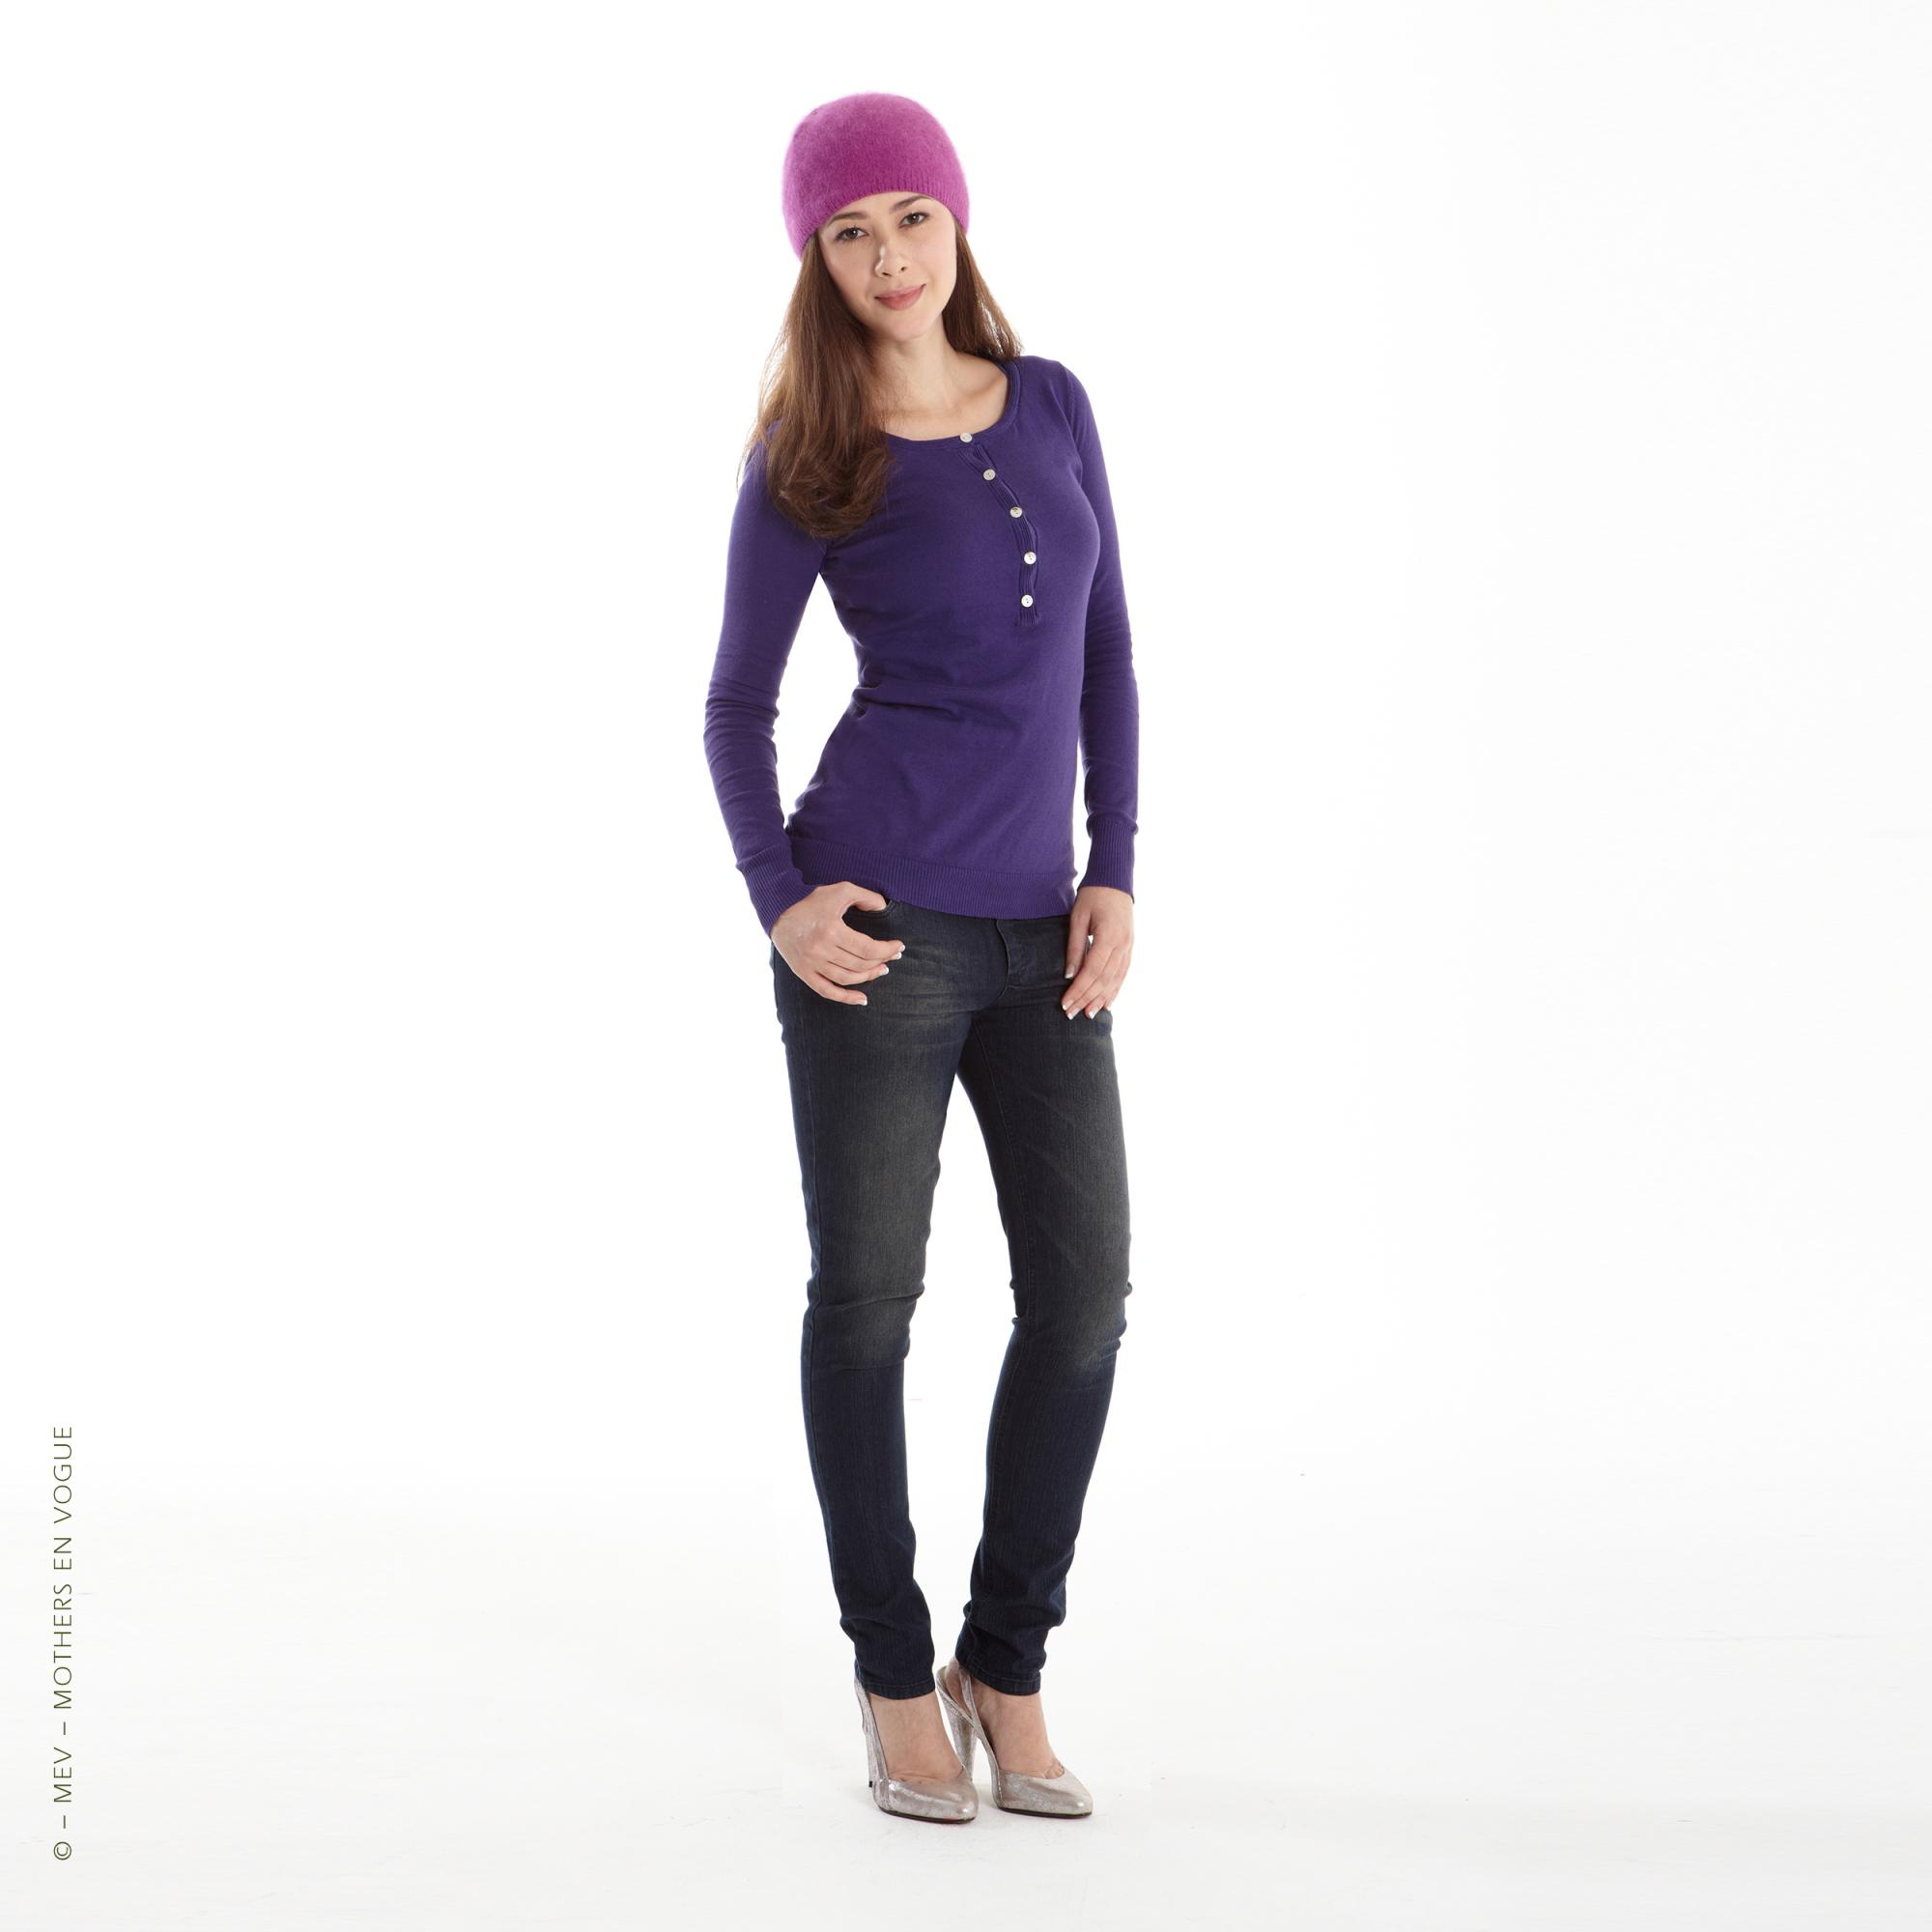 mothers-en-vogue-basic-button-down-nursing-sweater-wisteria-2.jpg